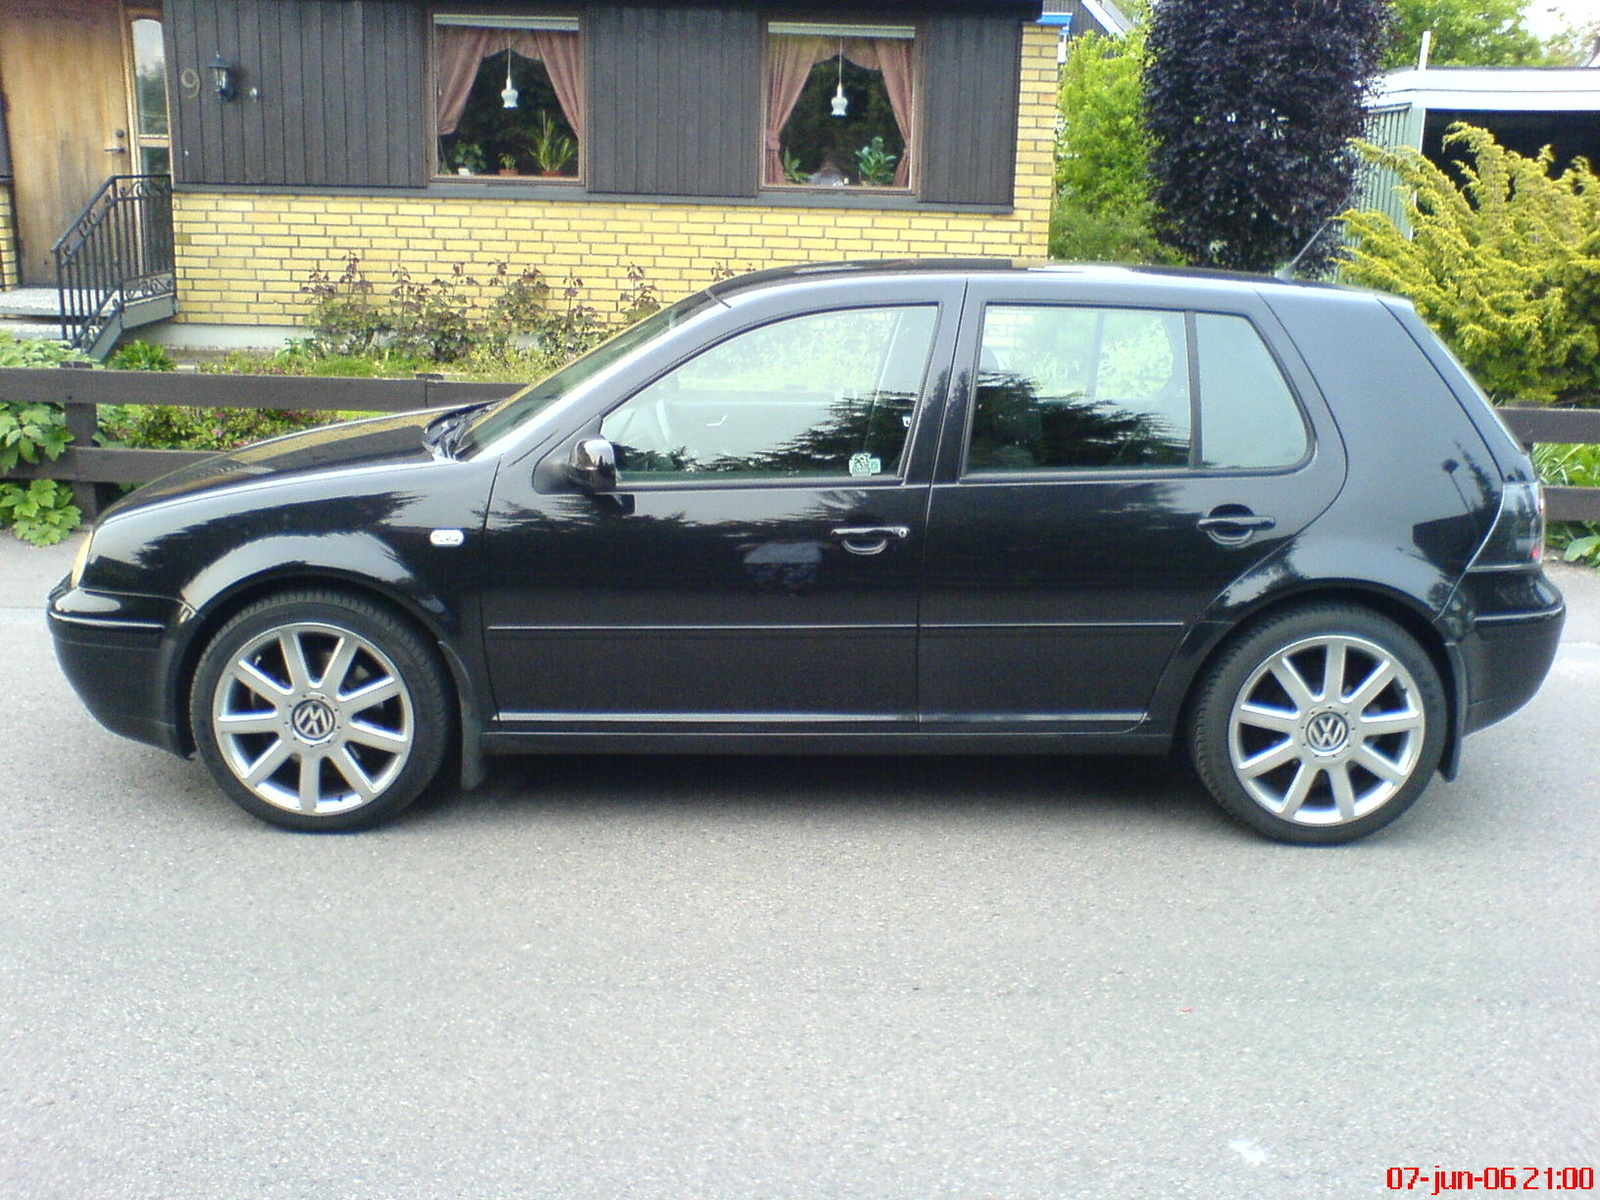 2004 Volkswagen GTI Pictures C5865 together with HD Volkswagen Modele Polo Blue GT 2013 Vue Interieur Img Volkswagen Polo Blue GT 2013 502 together with Audi 80 History Volkswagen Passat B4 besides Watch additionally Showthread. on 1985 vw gti